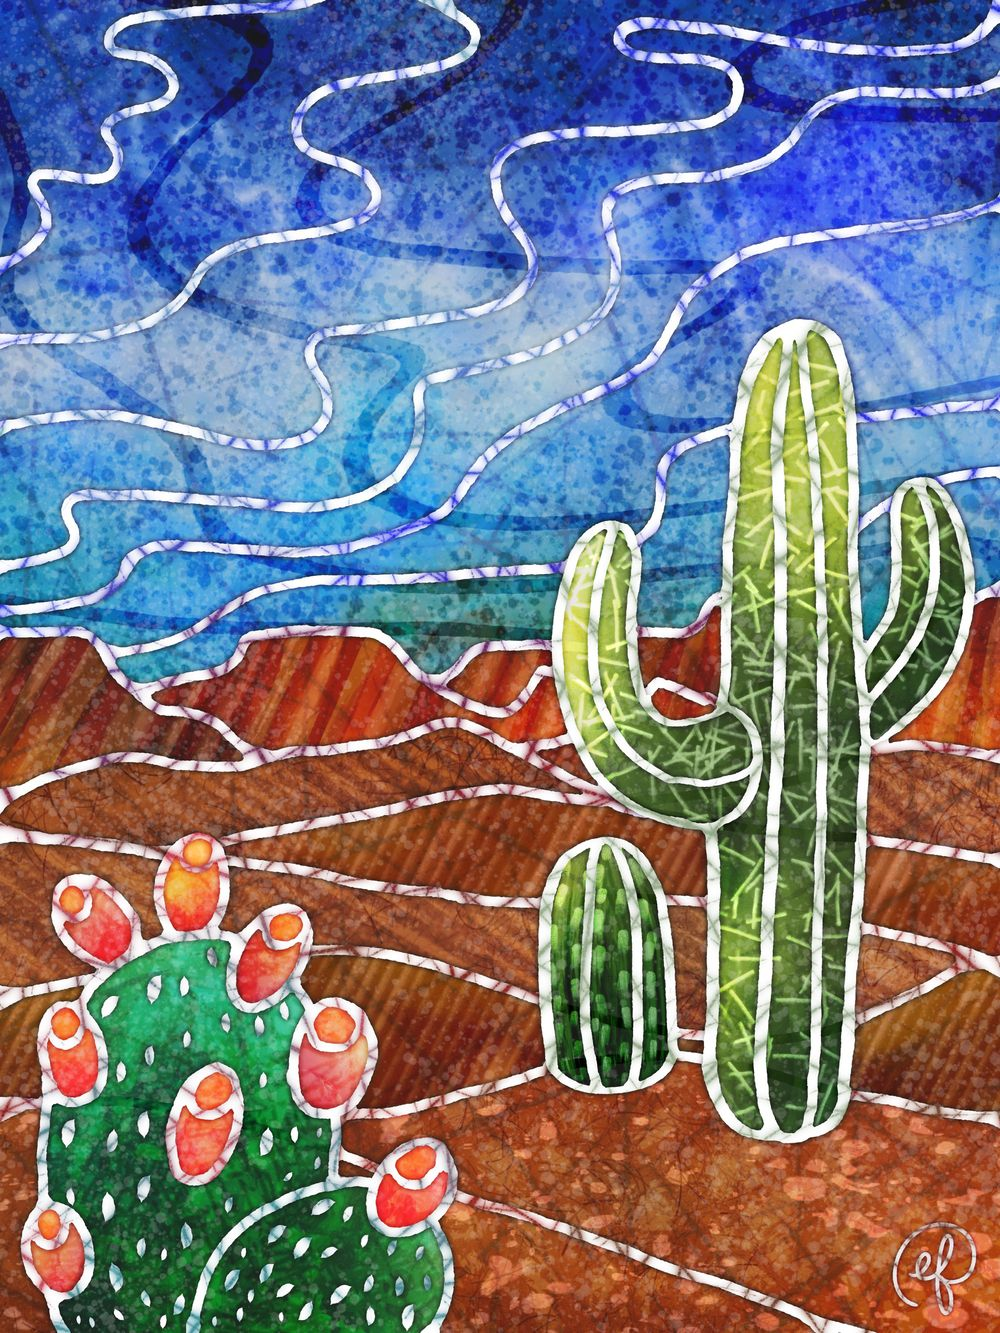 Cactus vibes - image 1 - student project